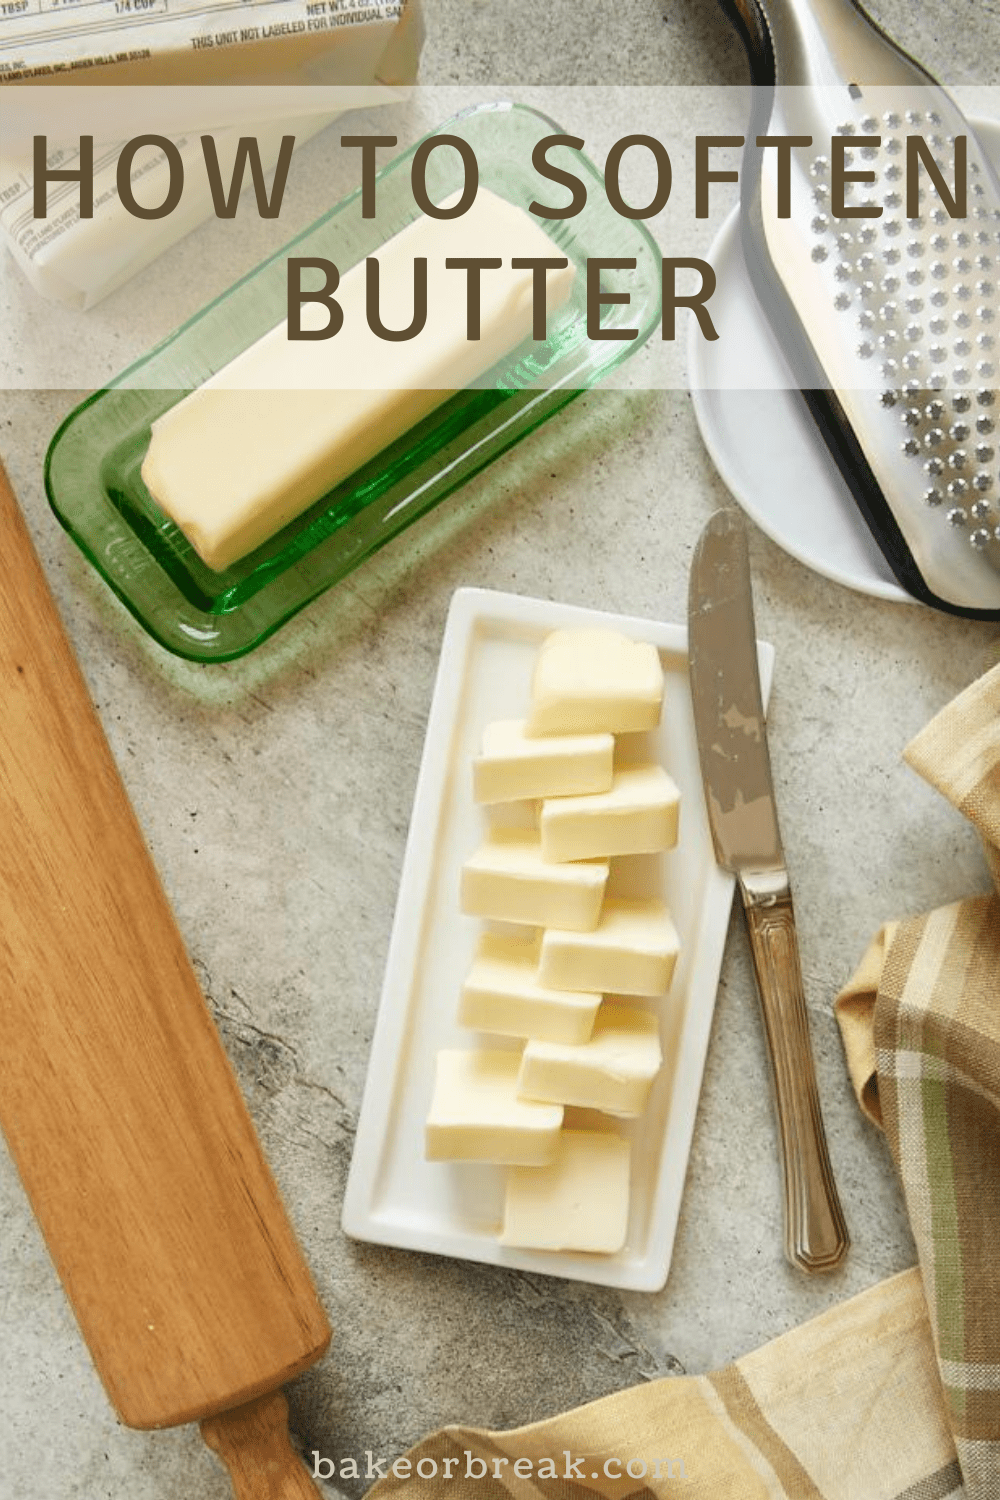 How to Soften Butter bakeorbreak.com